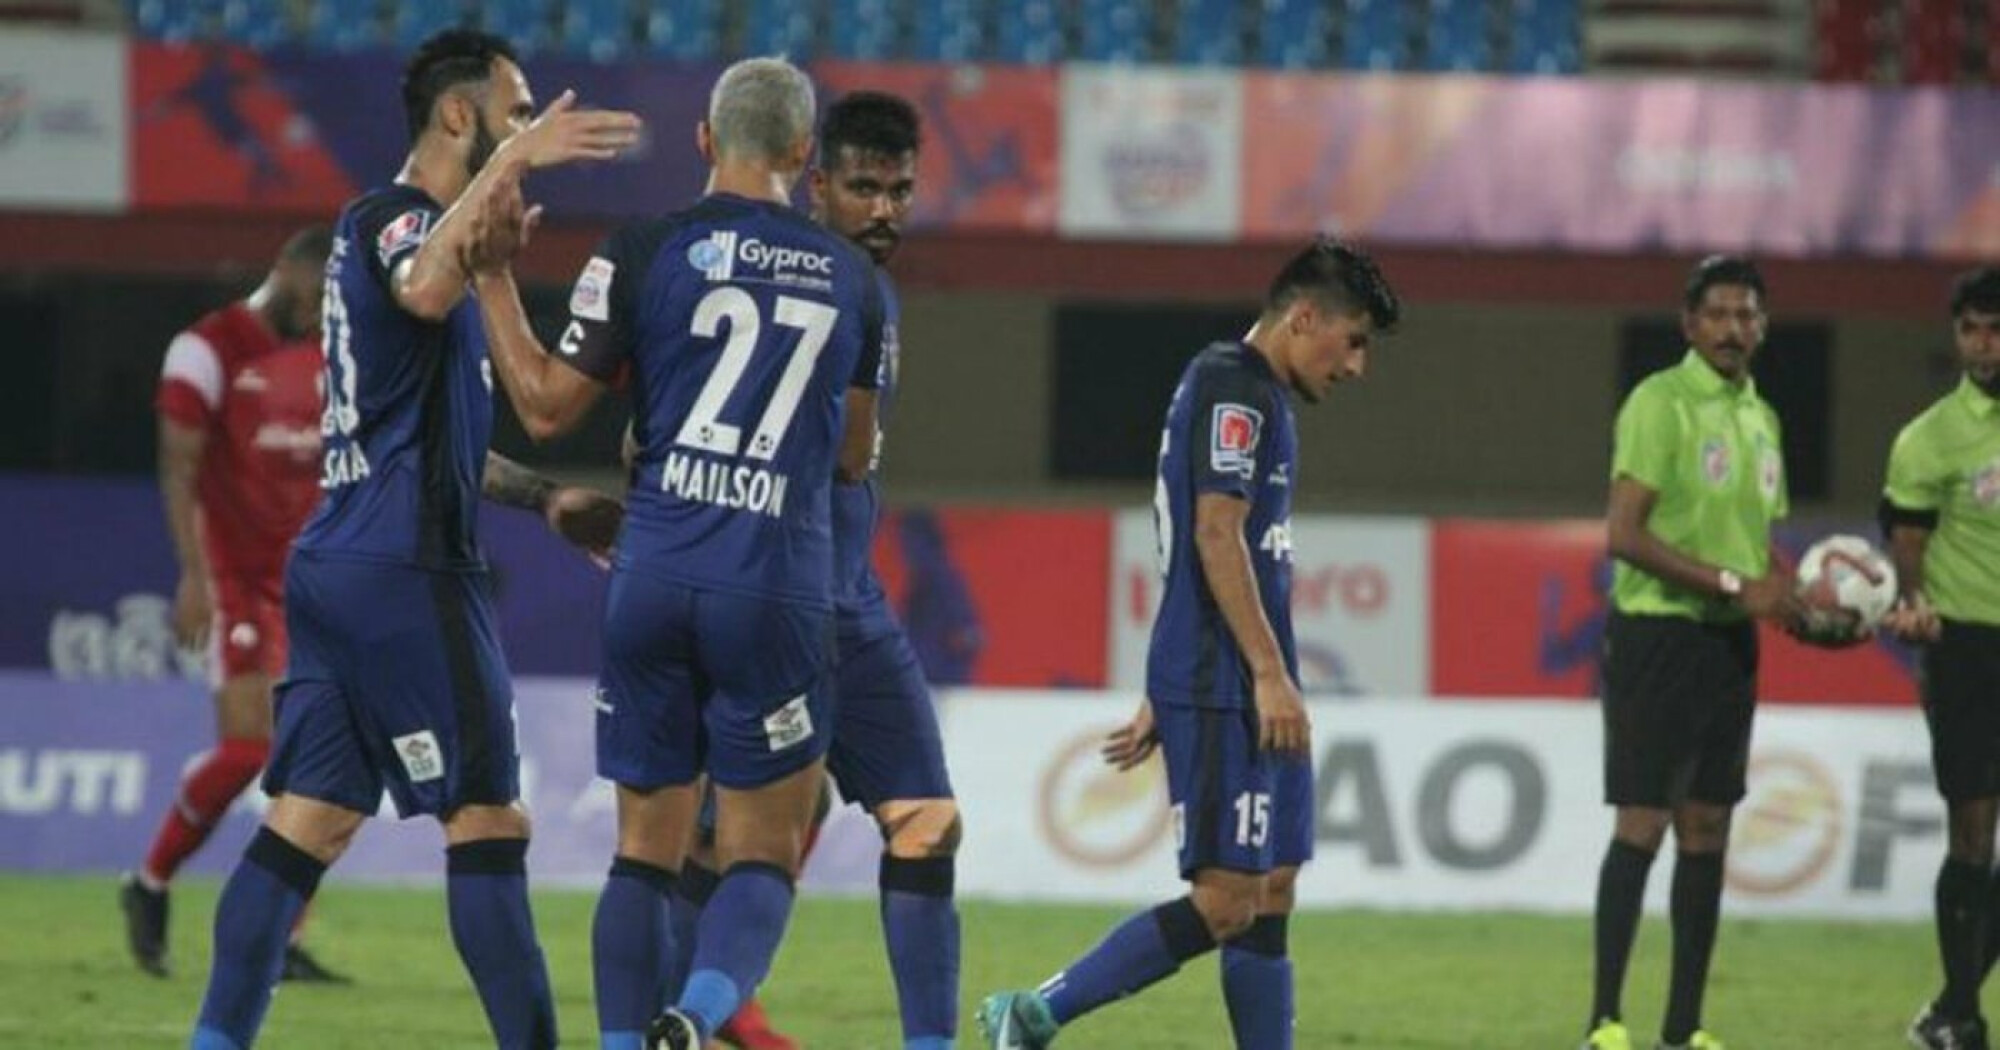 Super Cup 2019: Chennaiyin earn hard-fought win over NorthEast United